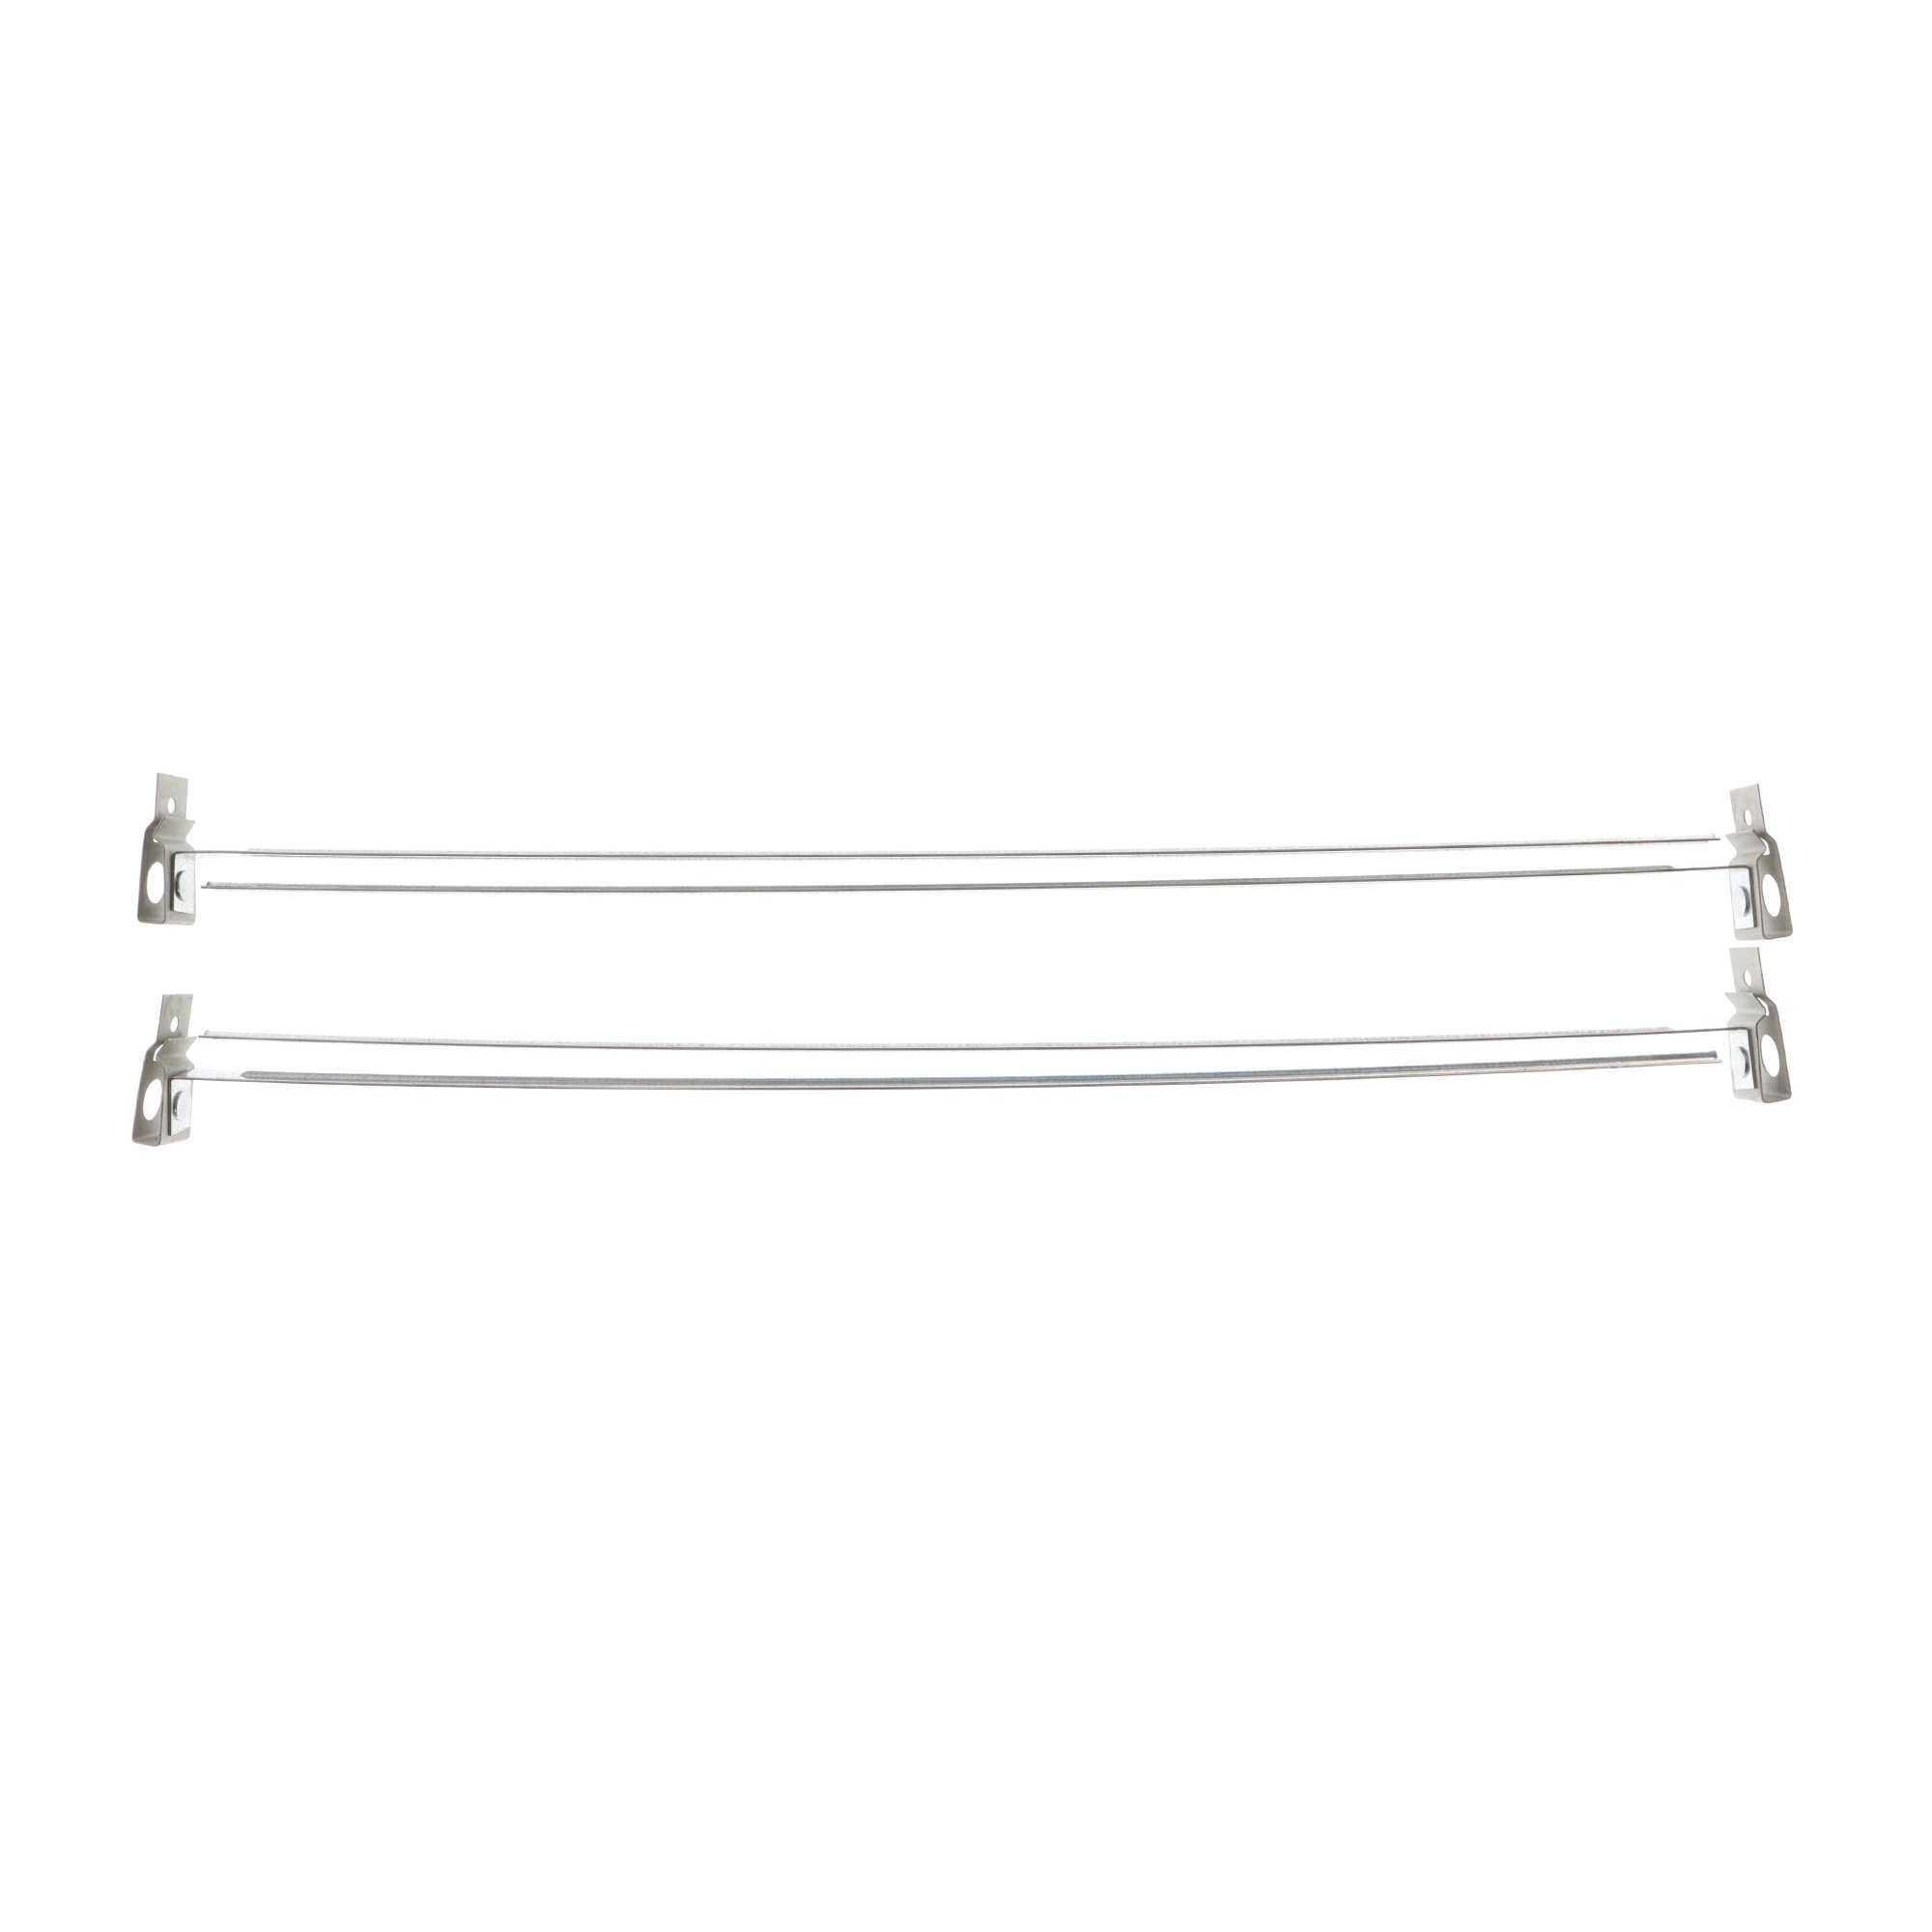 Caddy Erico 517B T-Grid Recessed Light Fixture Suspension Bar, (10-Pack)